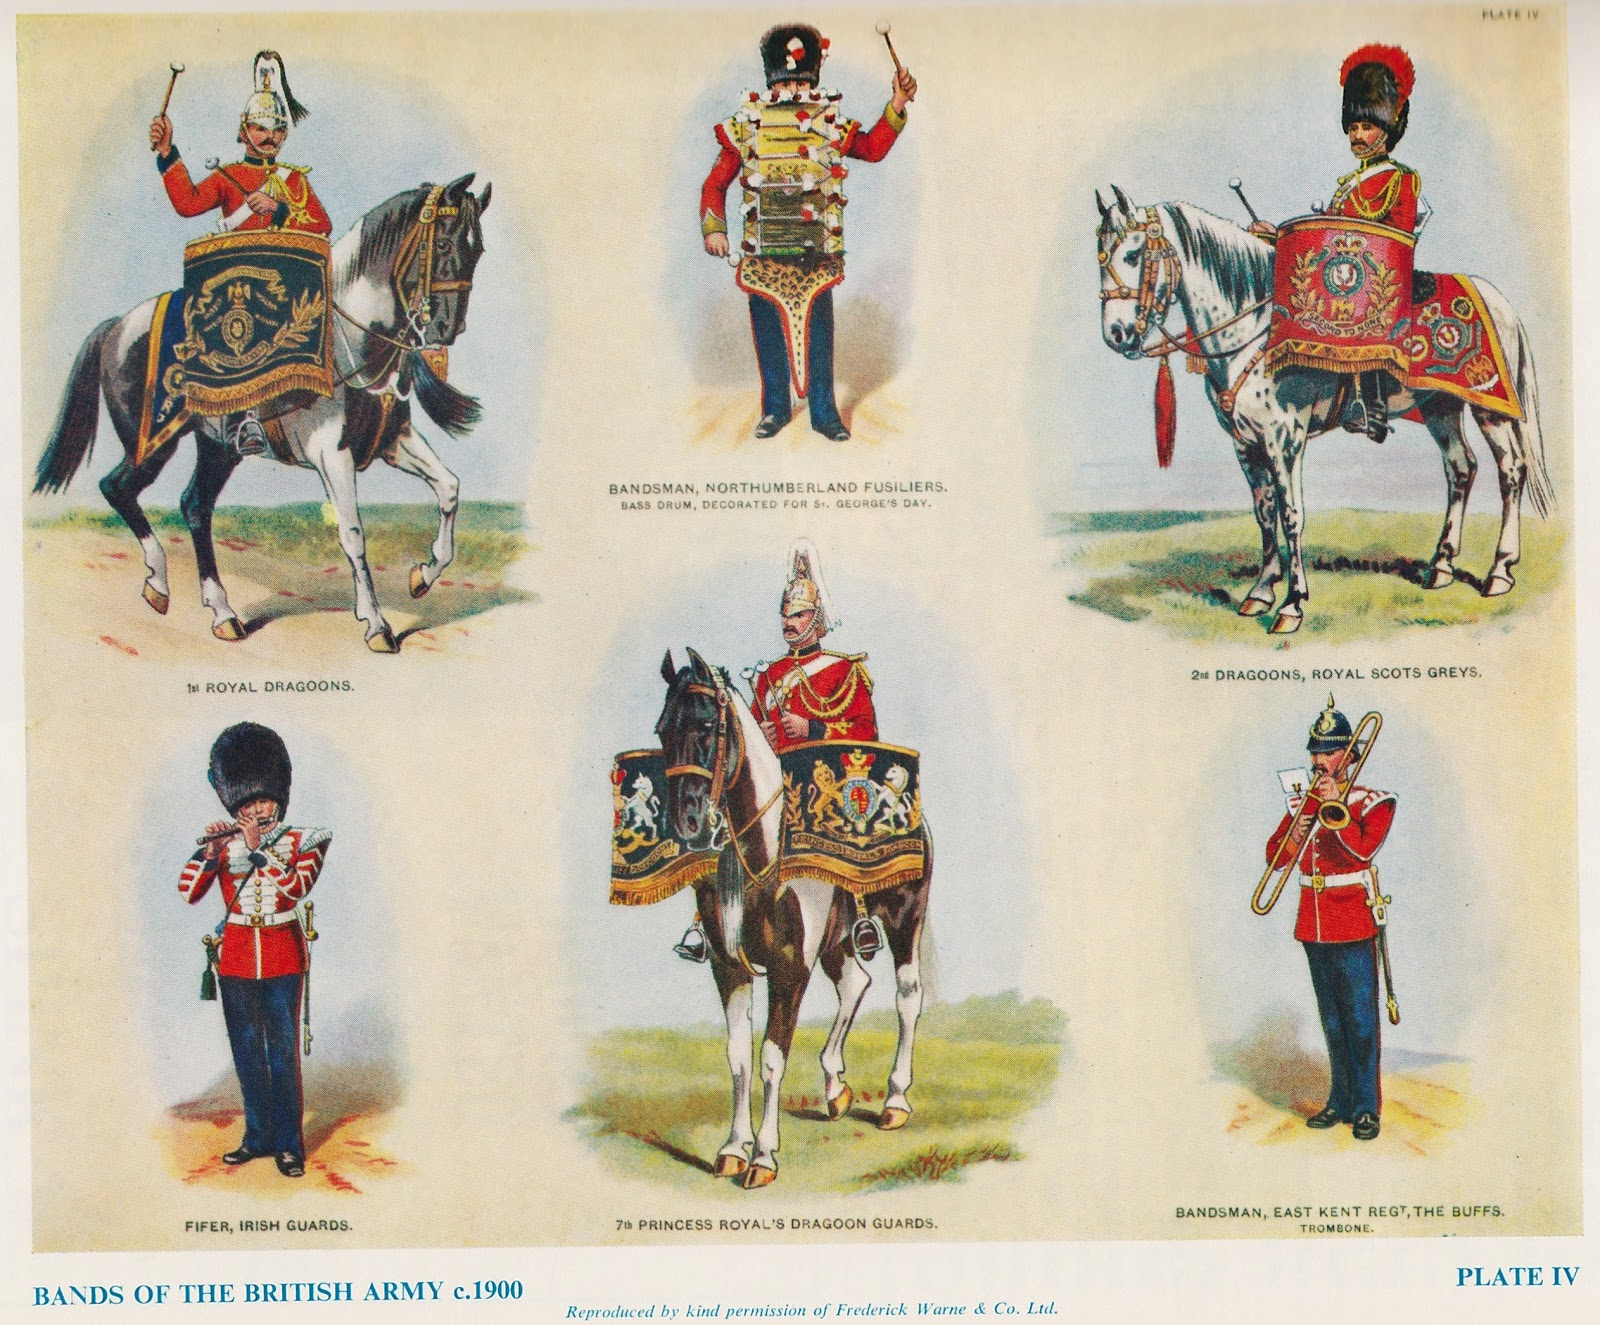 Arnhem jim regimental bands of the british army c 1900 by richard